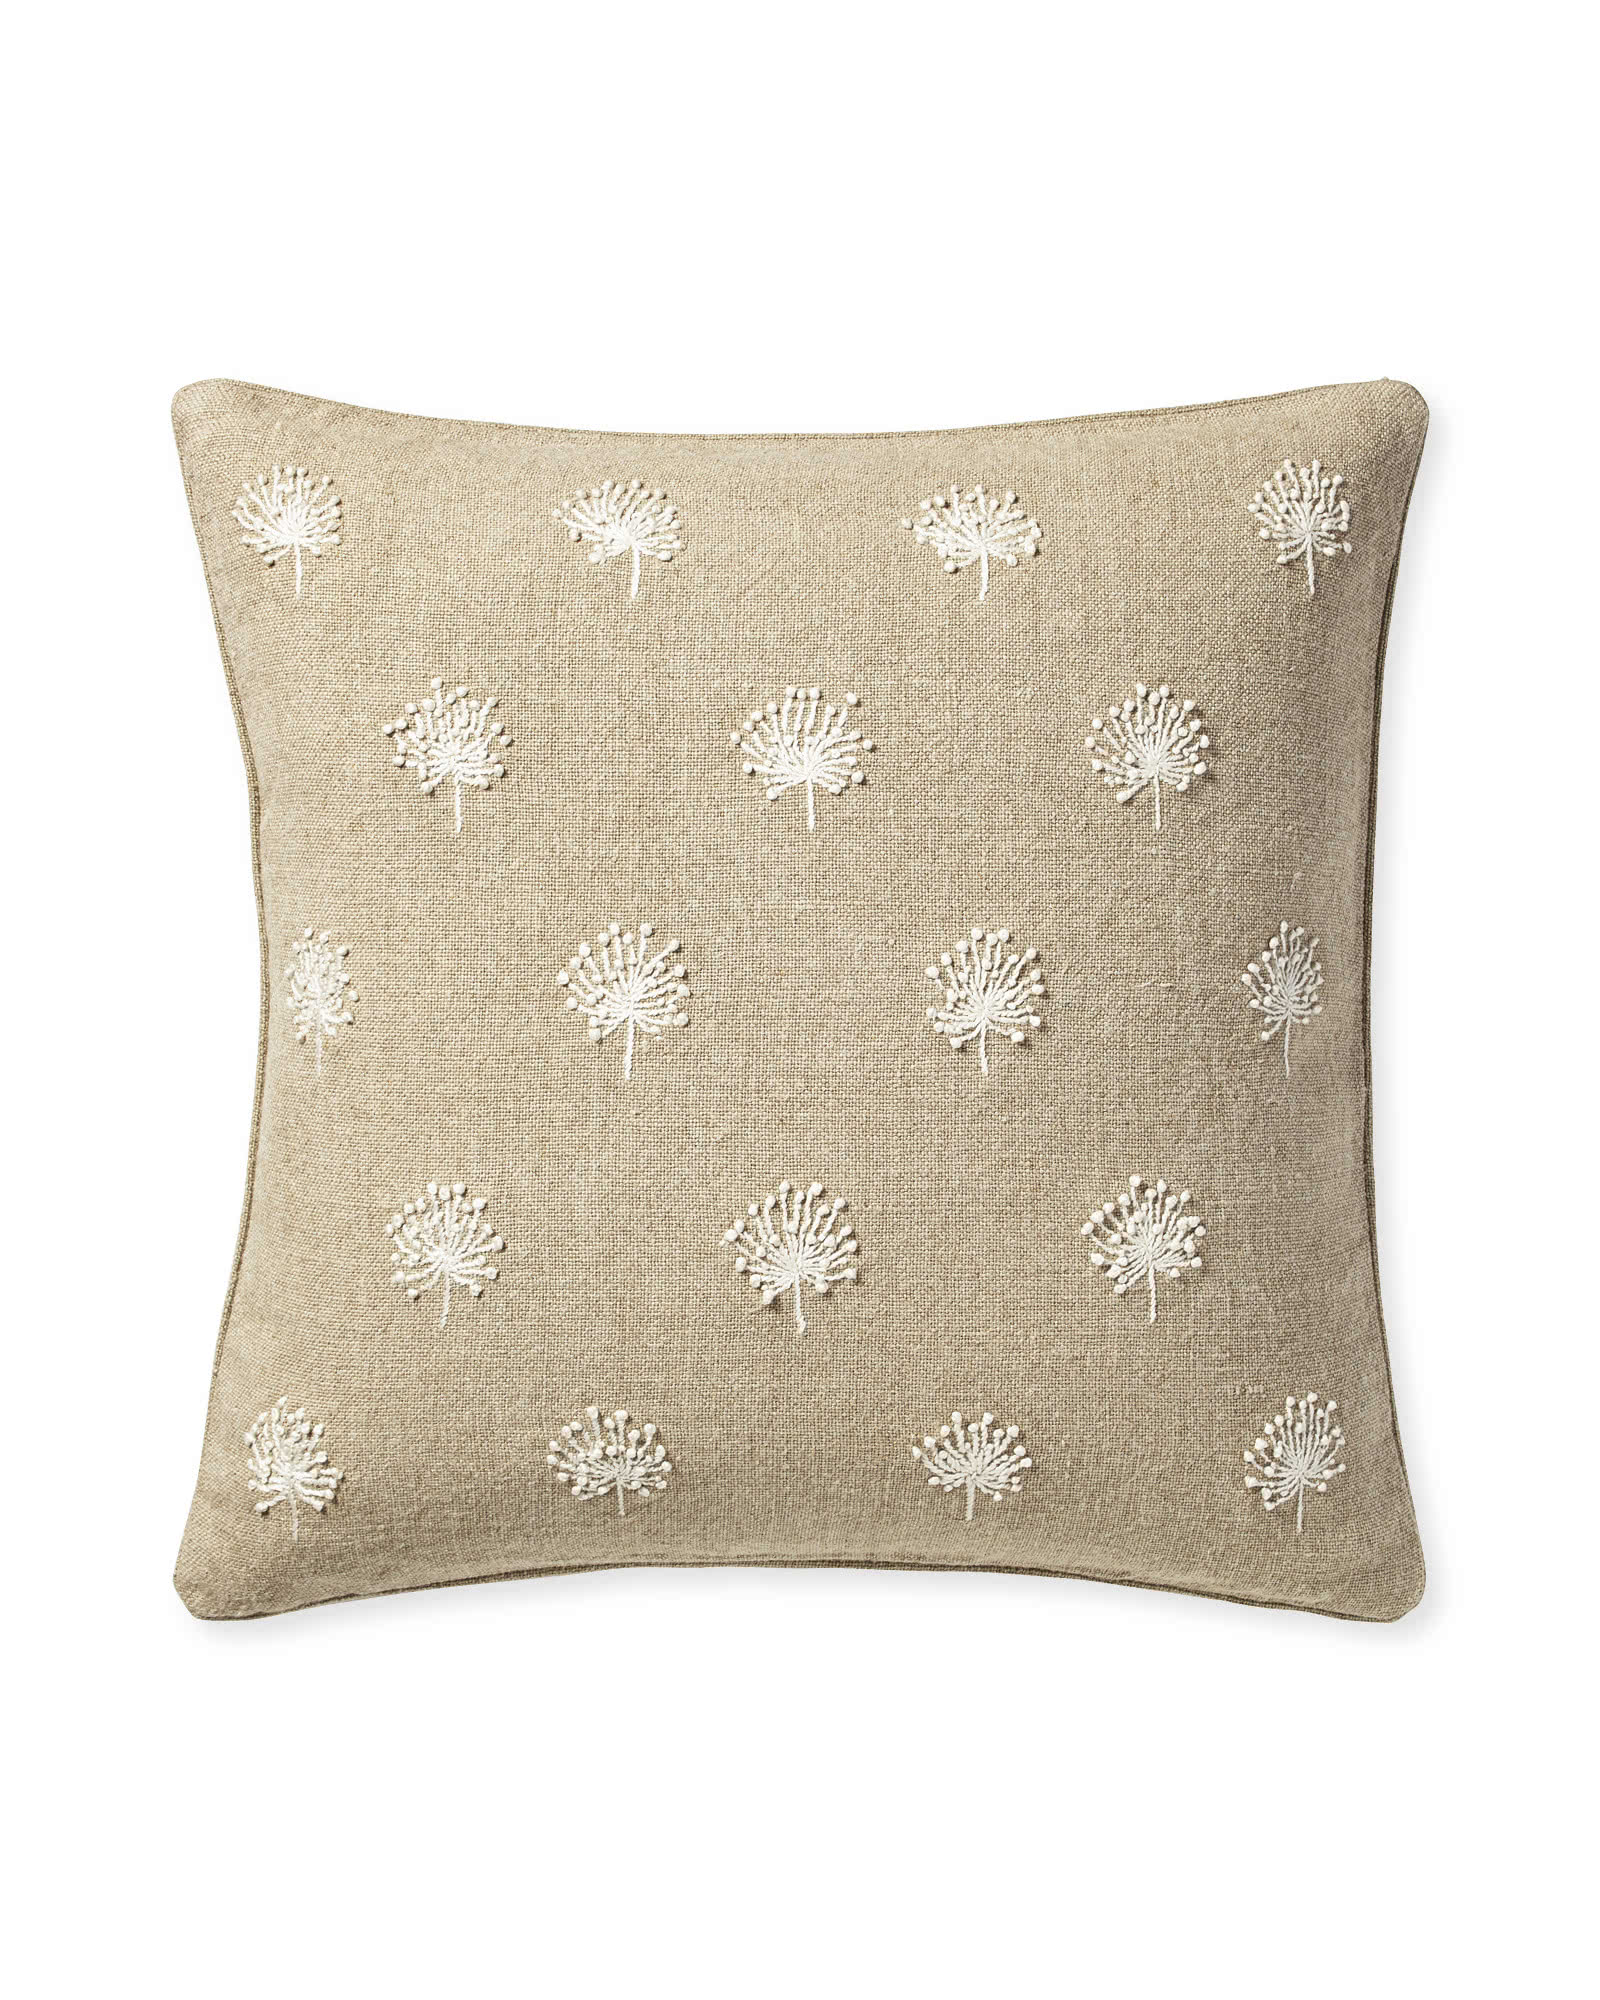 Dandelion Embroidered Pillow Cover,